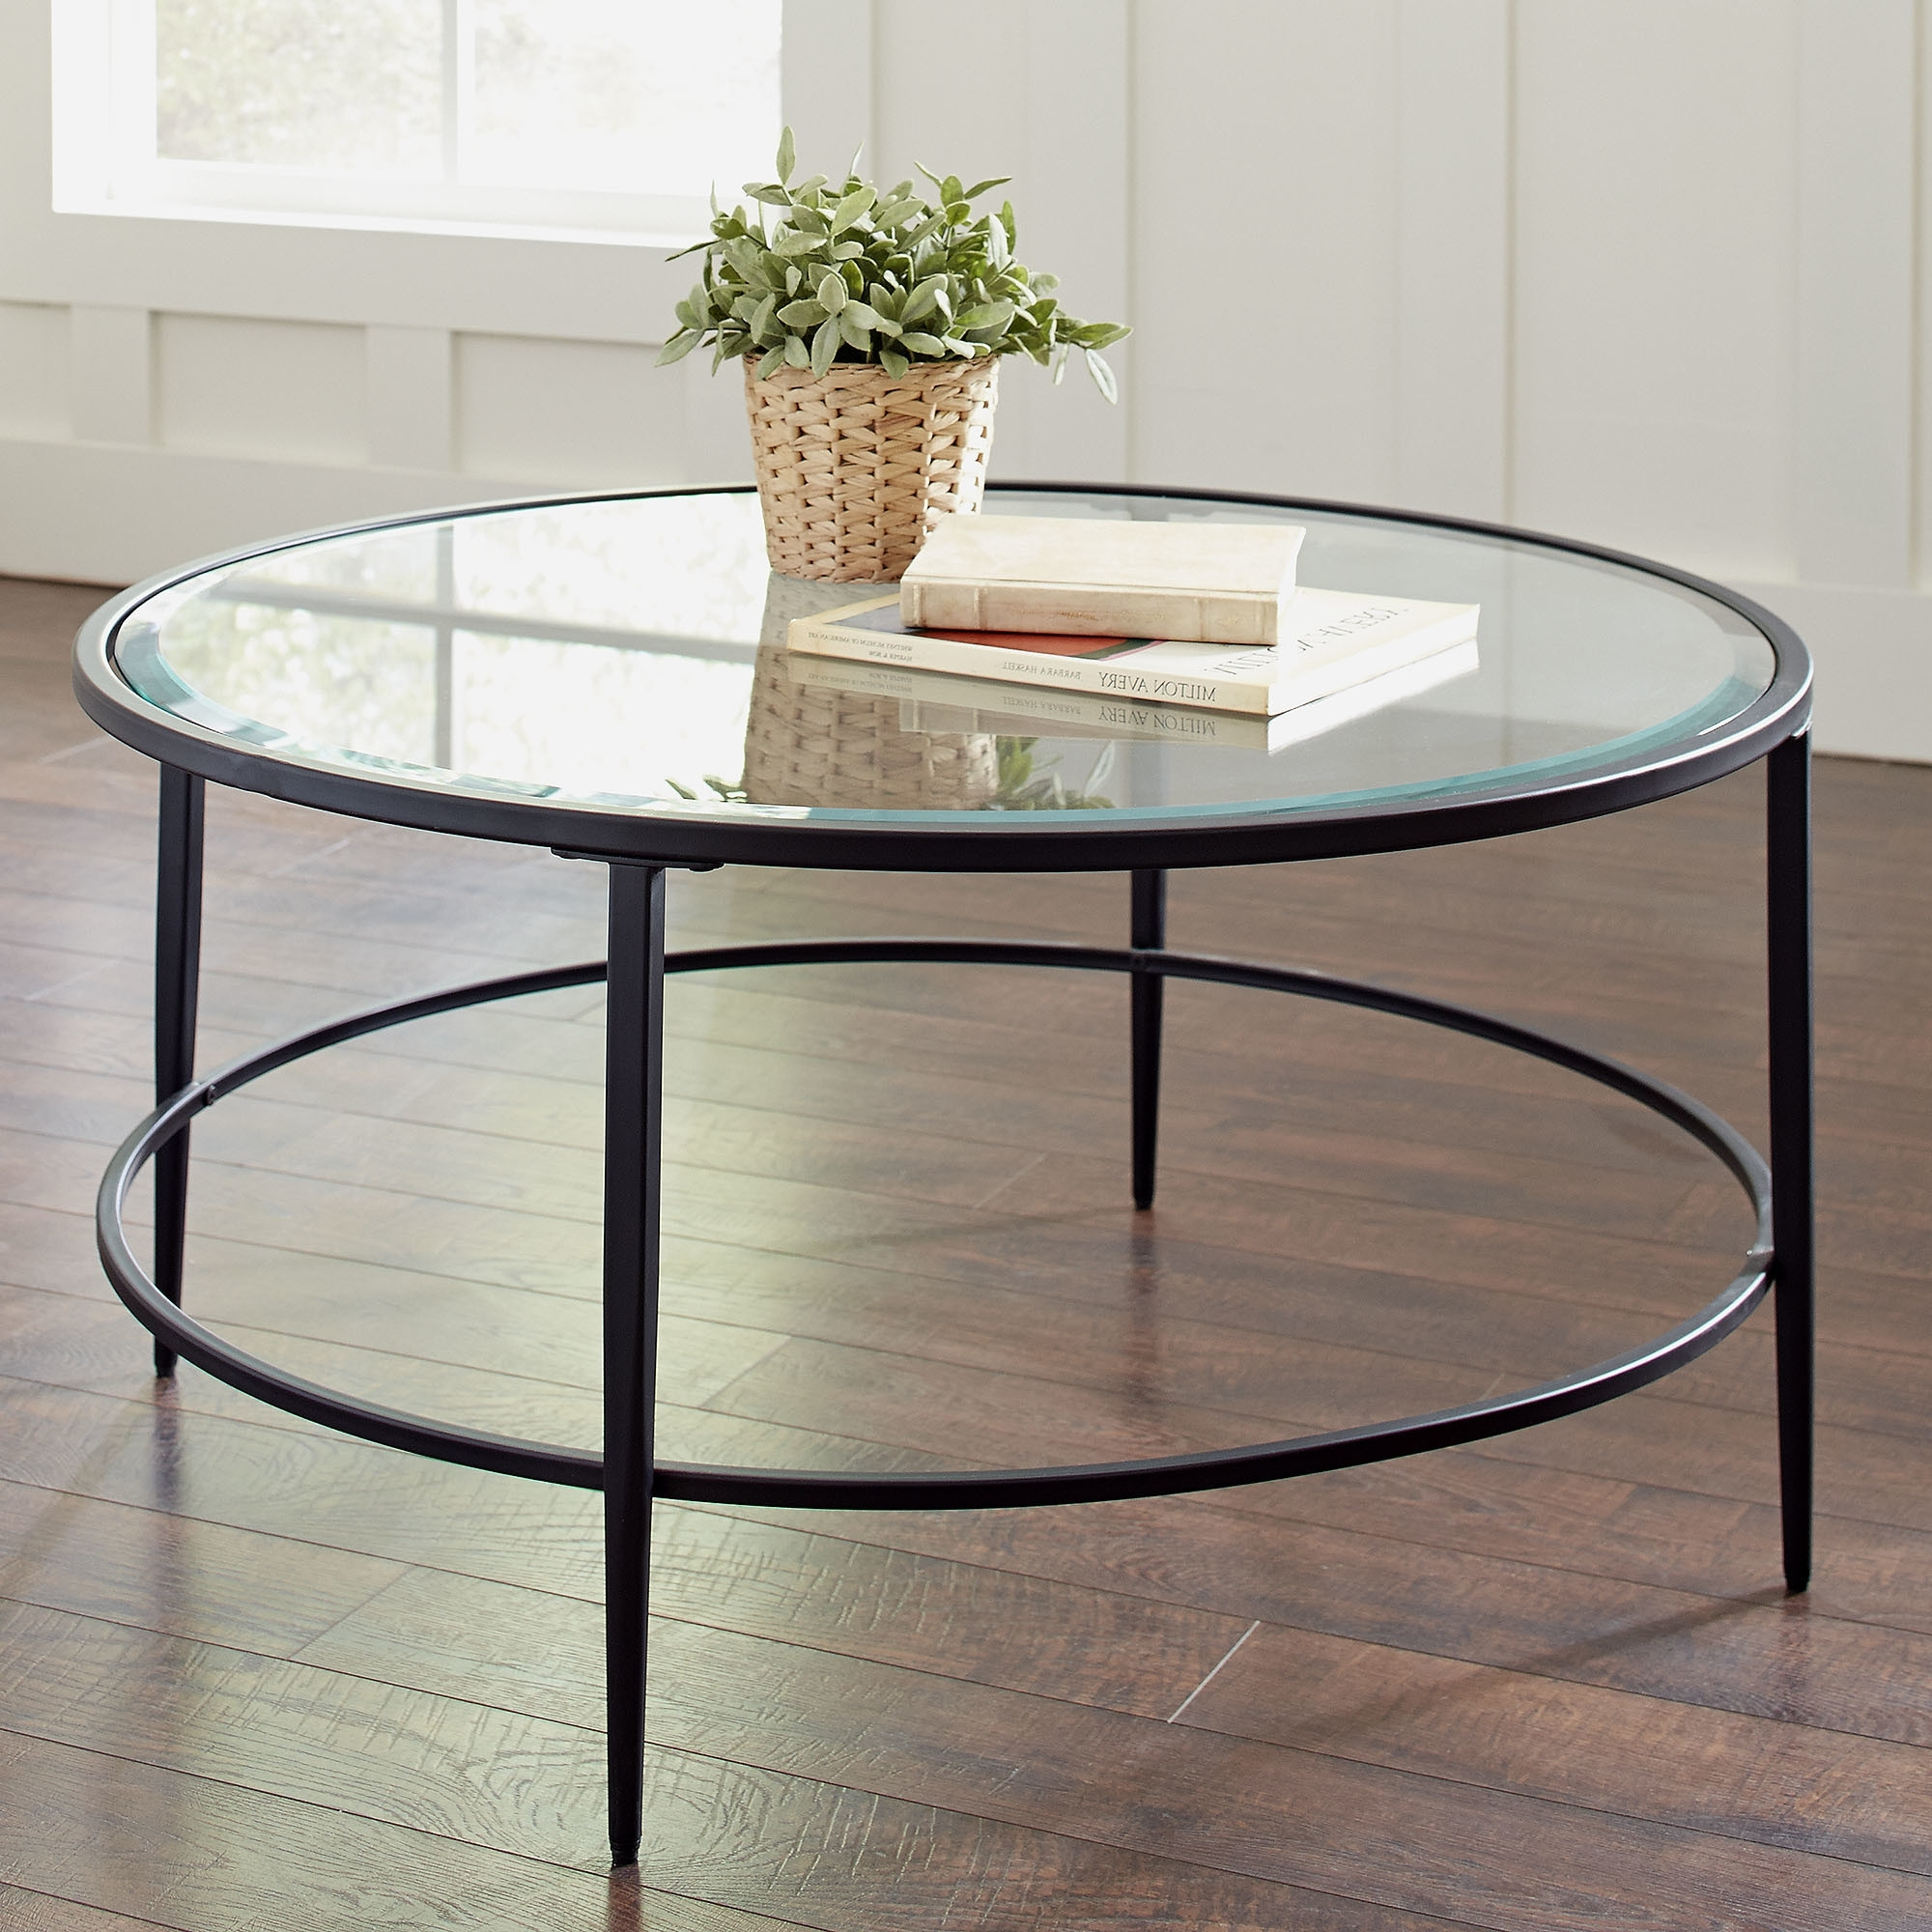 Furniture : Decoration Living Room Coffee Table Ideas Featuring Throughout Current Torrin Round Cocktail Tables (View 7 of 20)